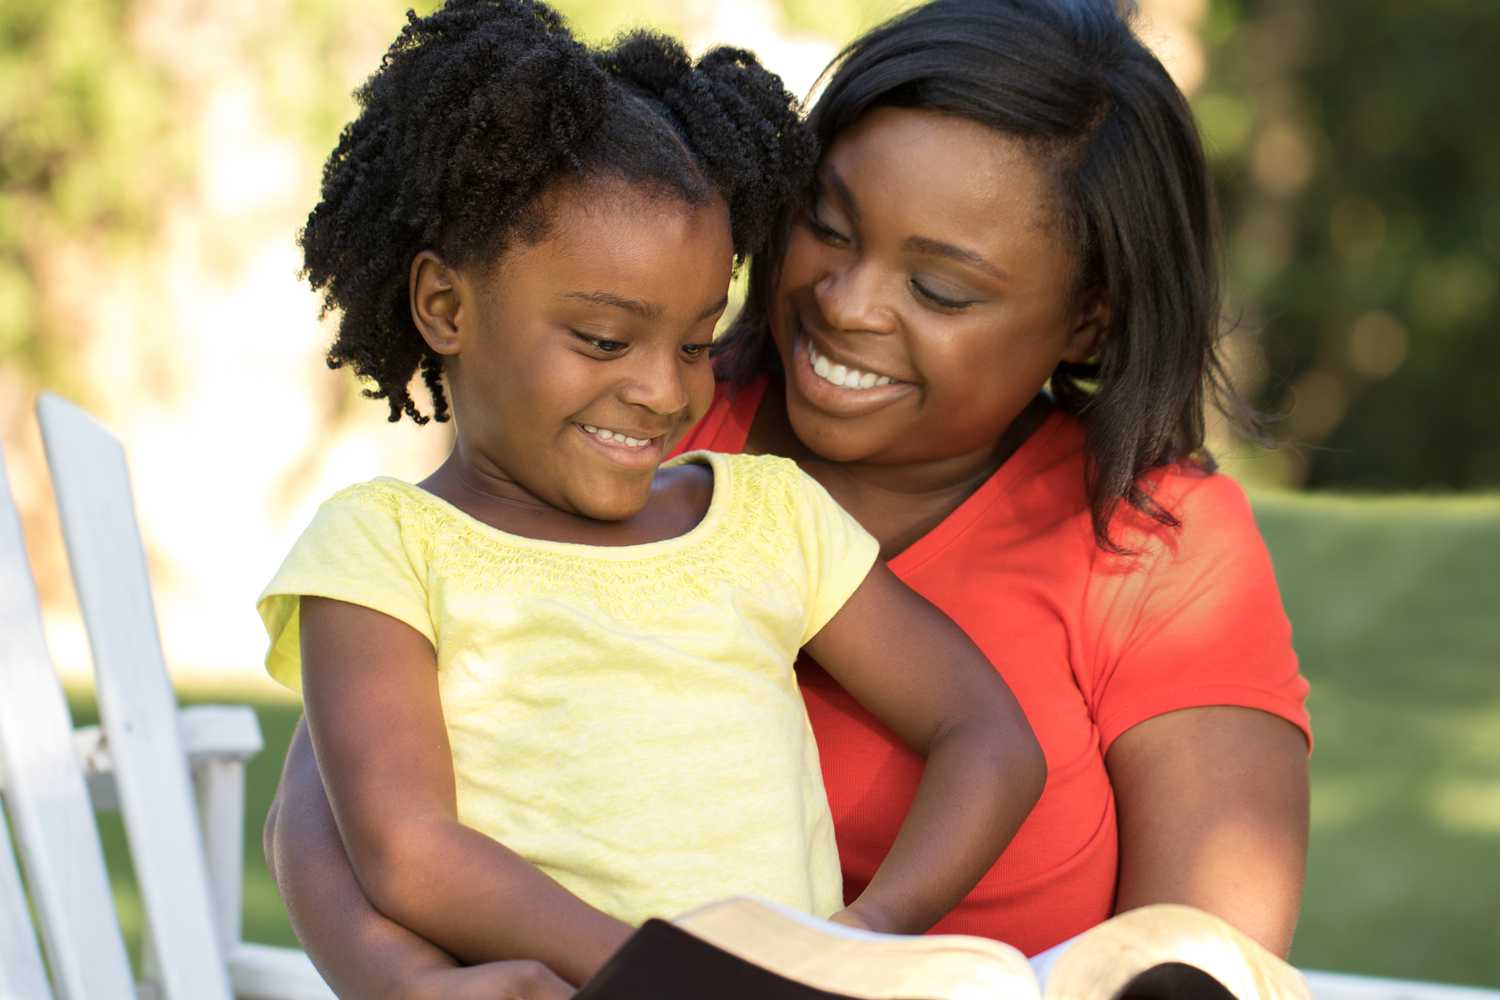 Top 6 Bible Stories For Kids